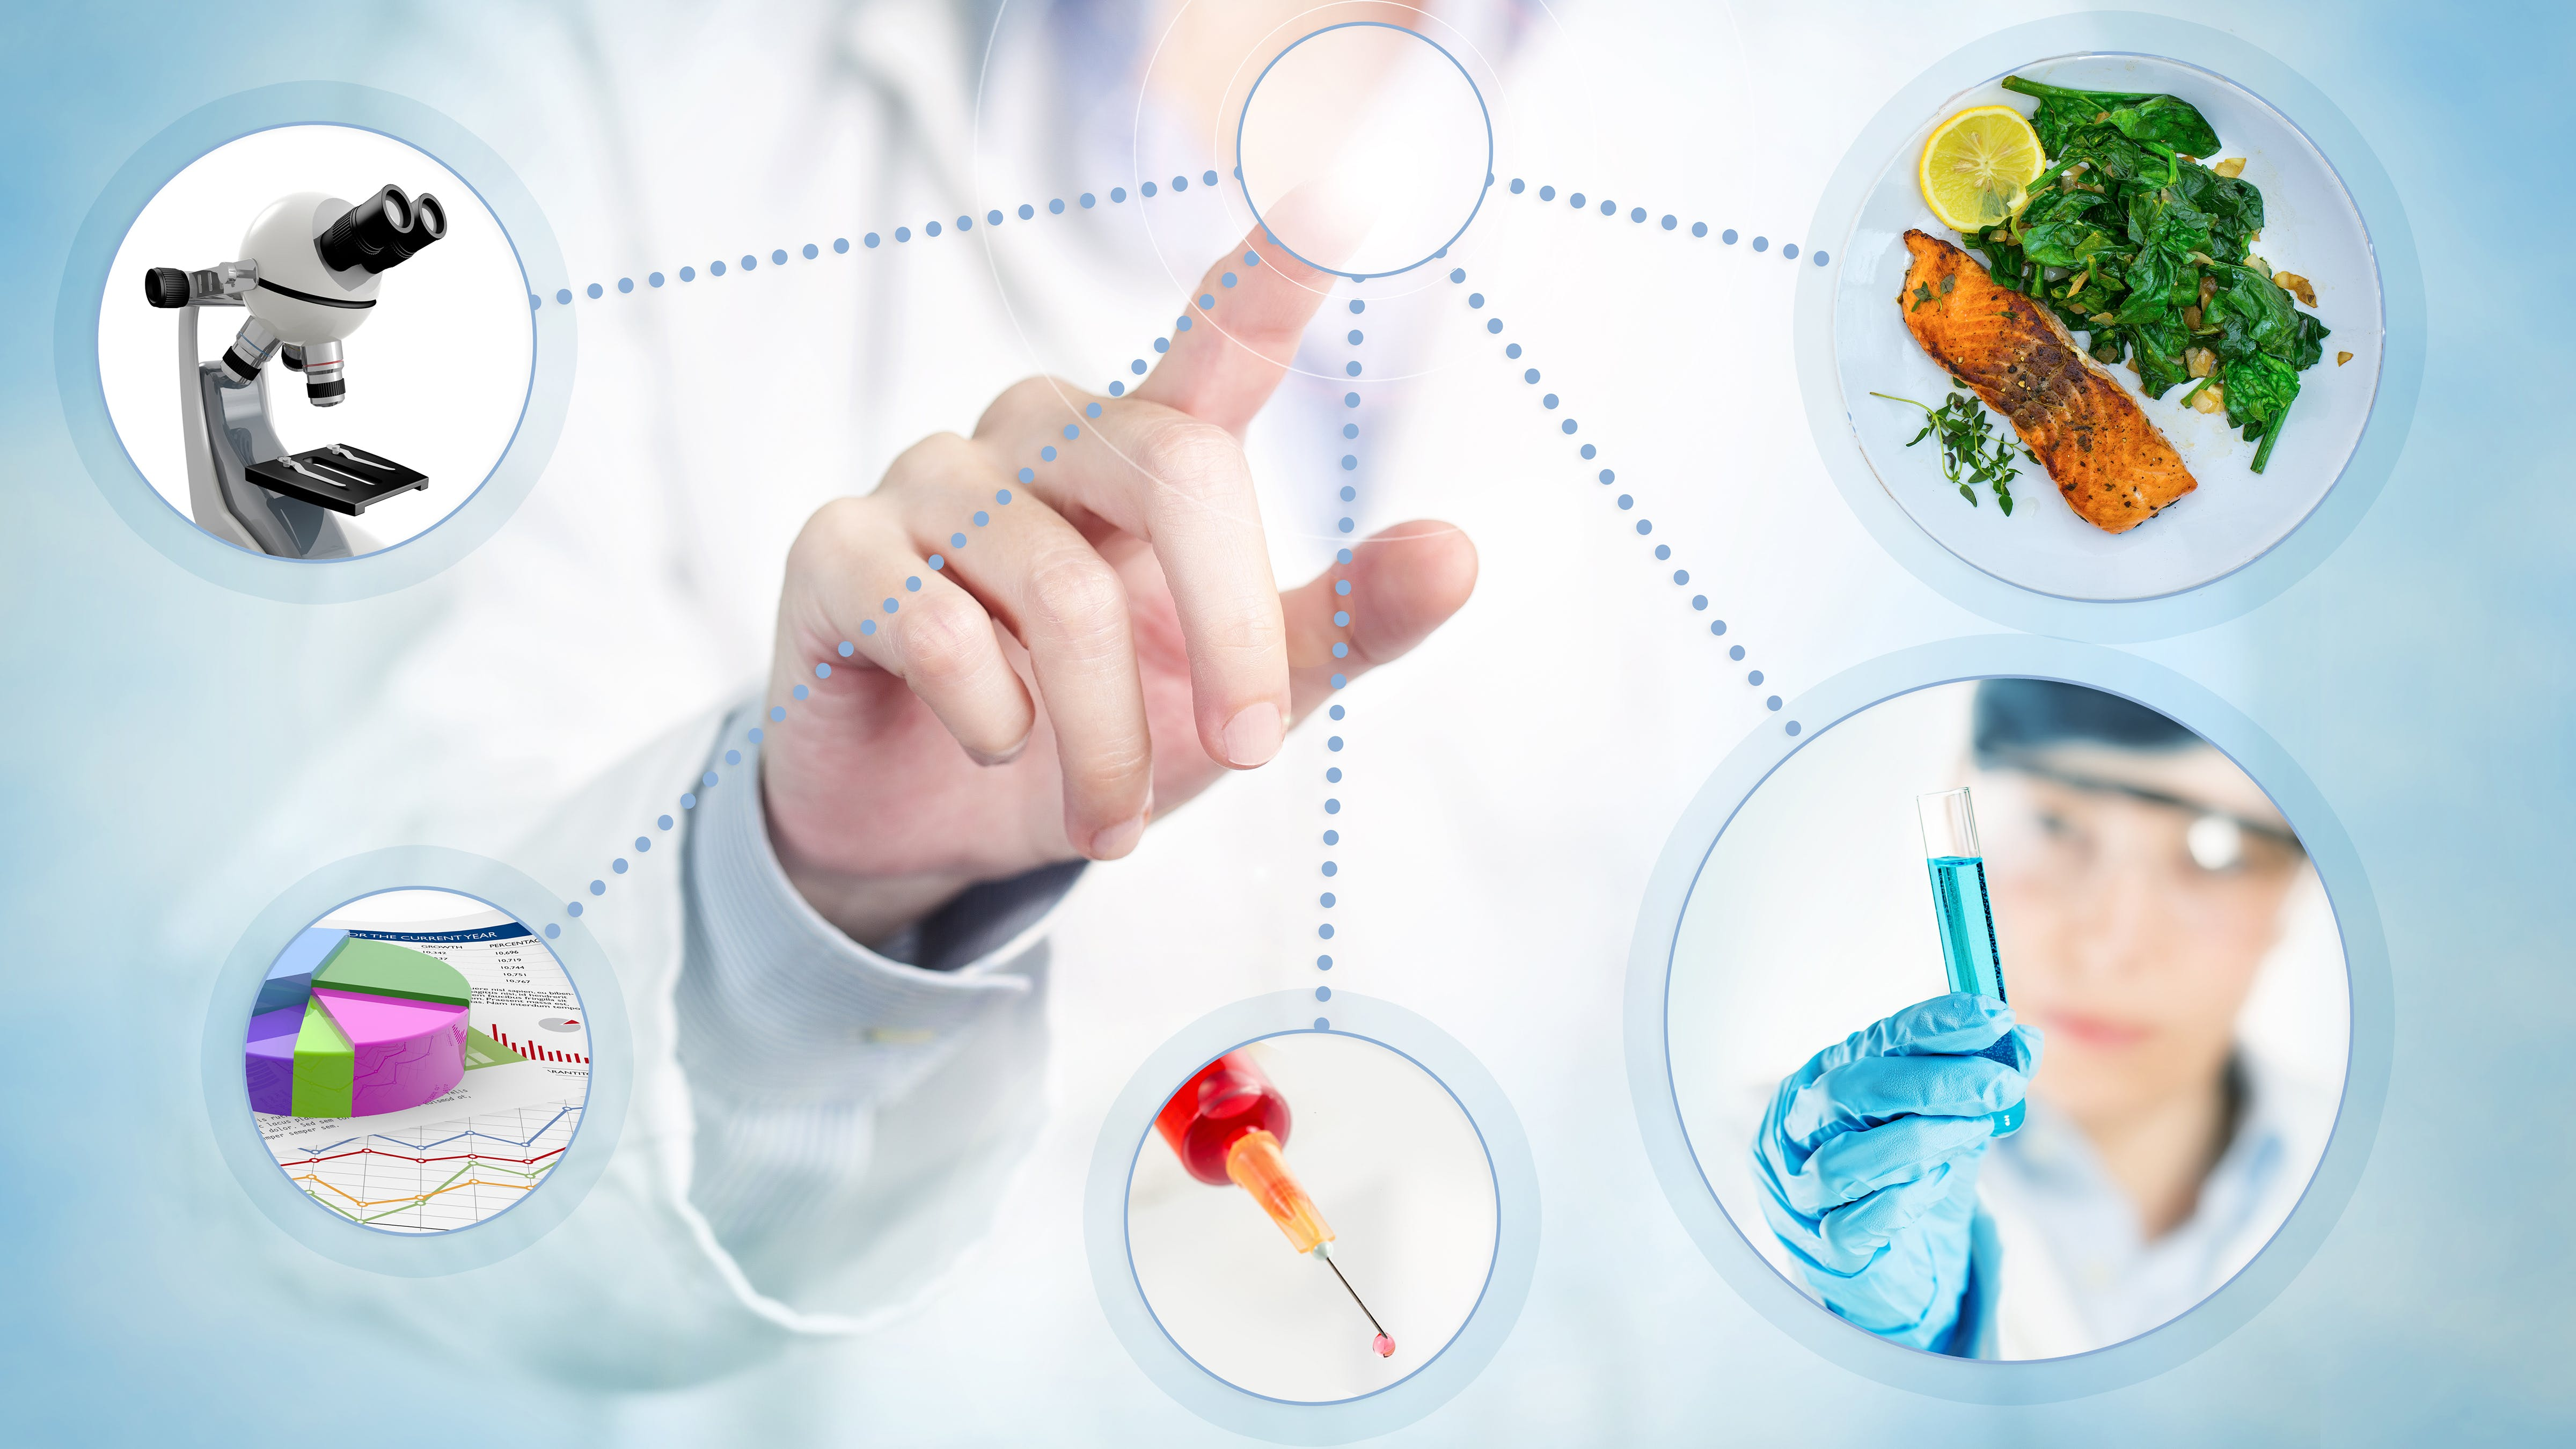 Help us let the NIH know that low-carb diets should be on its research agenda